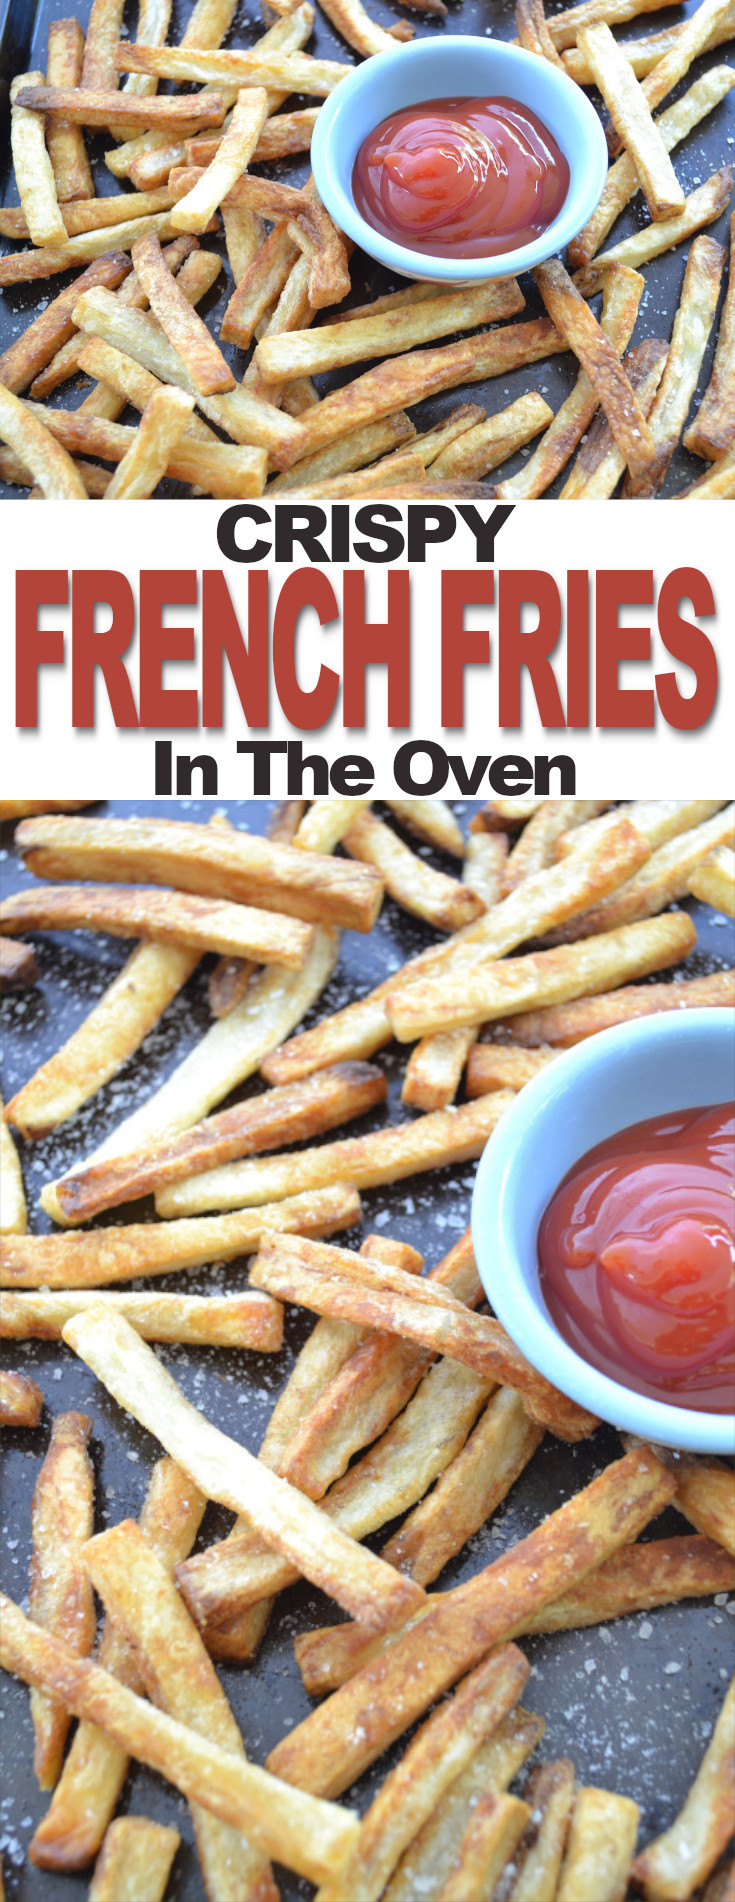 Baked French fries, a guiltless indulgence! They contain considerably less fat than regular fried potatoes, they're simple but are still crispy and just as delicious.